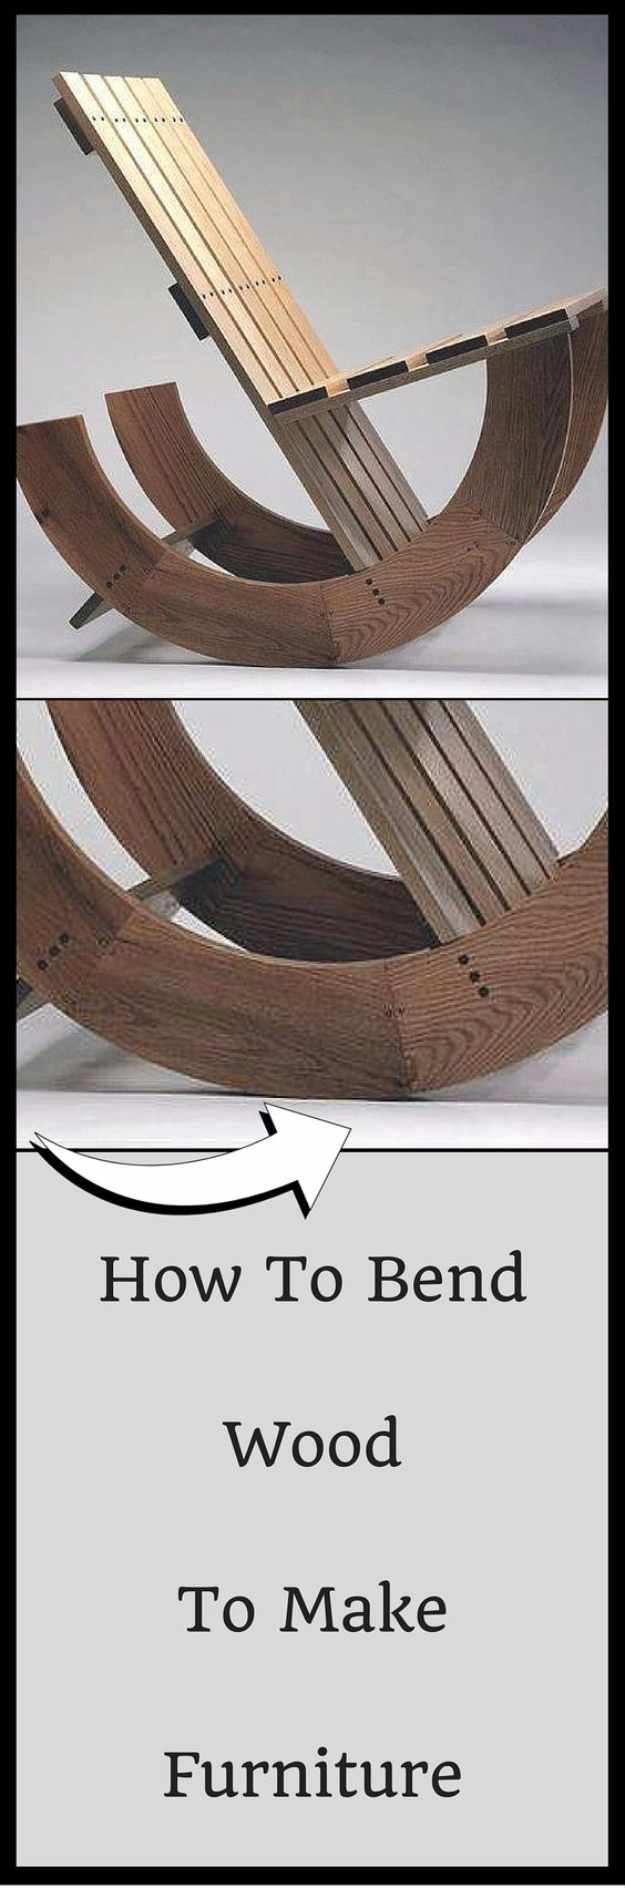 Cool Woodworking Tips - Bend Wood To Make Furniture - Easy Woodworking Ideas, Woodworking Tips and Tricks, Woodworking Tips For Beginners, Basic Guide For Woodworking http://diyjoy.com/diy-woodworking-tips